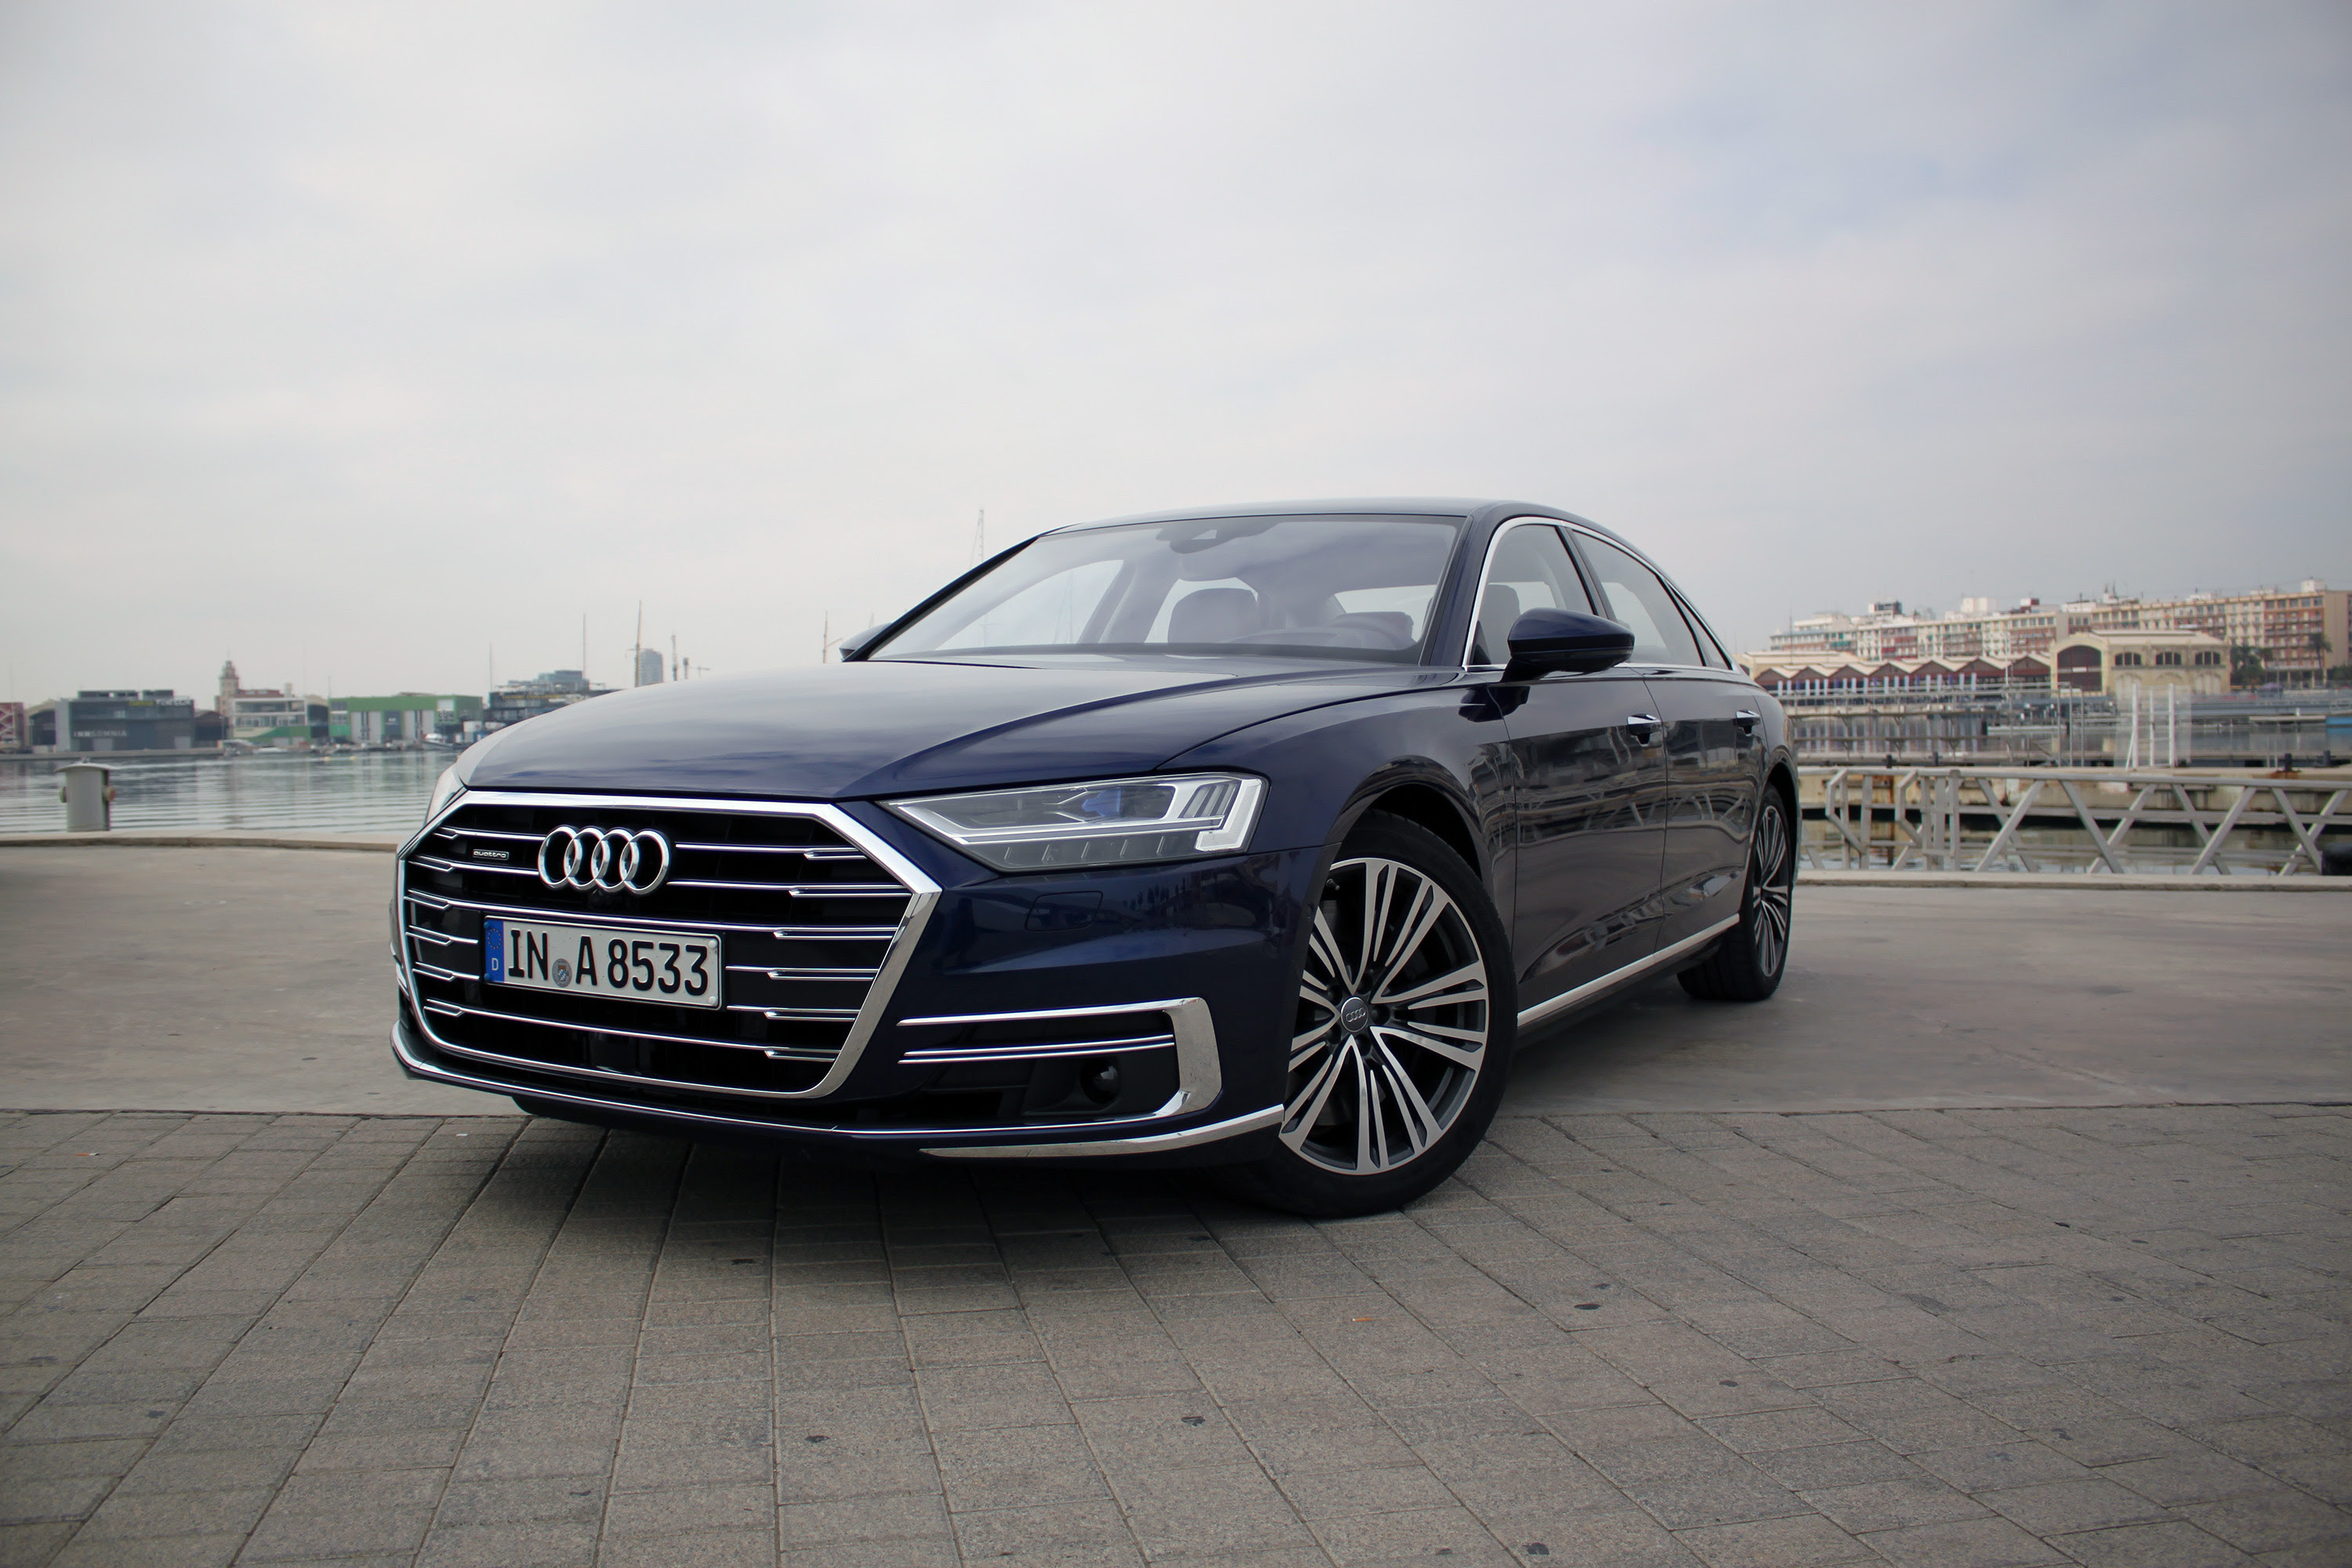 2019 Audi A8 Review - AutoGuide.com News